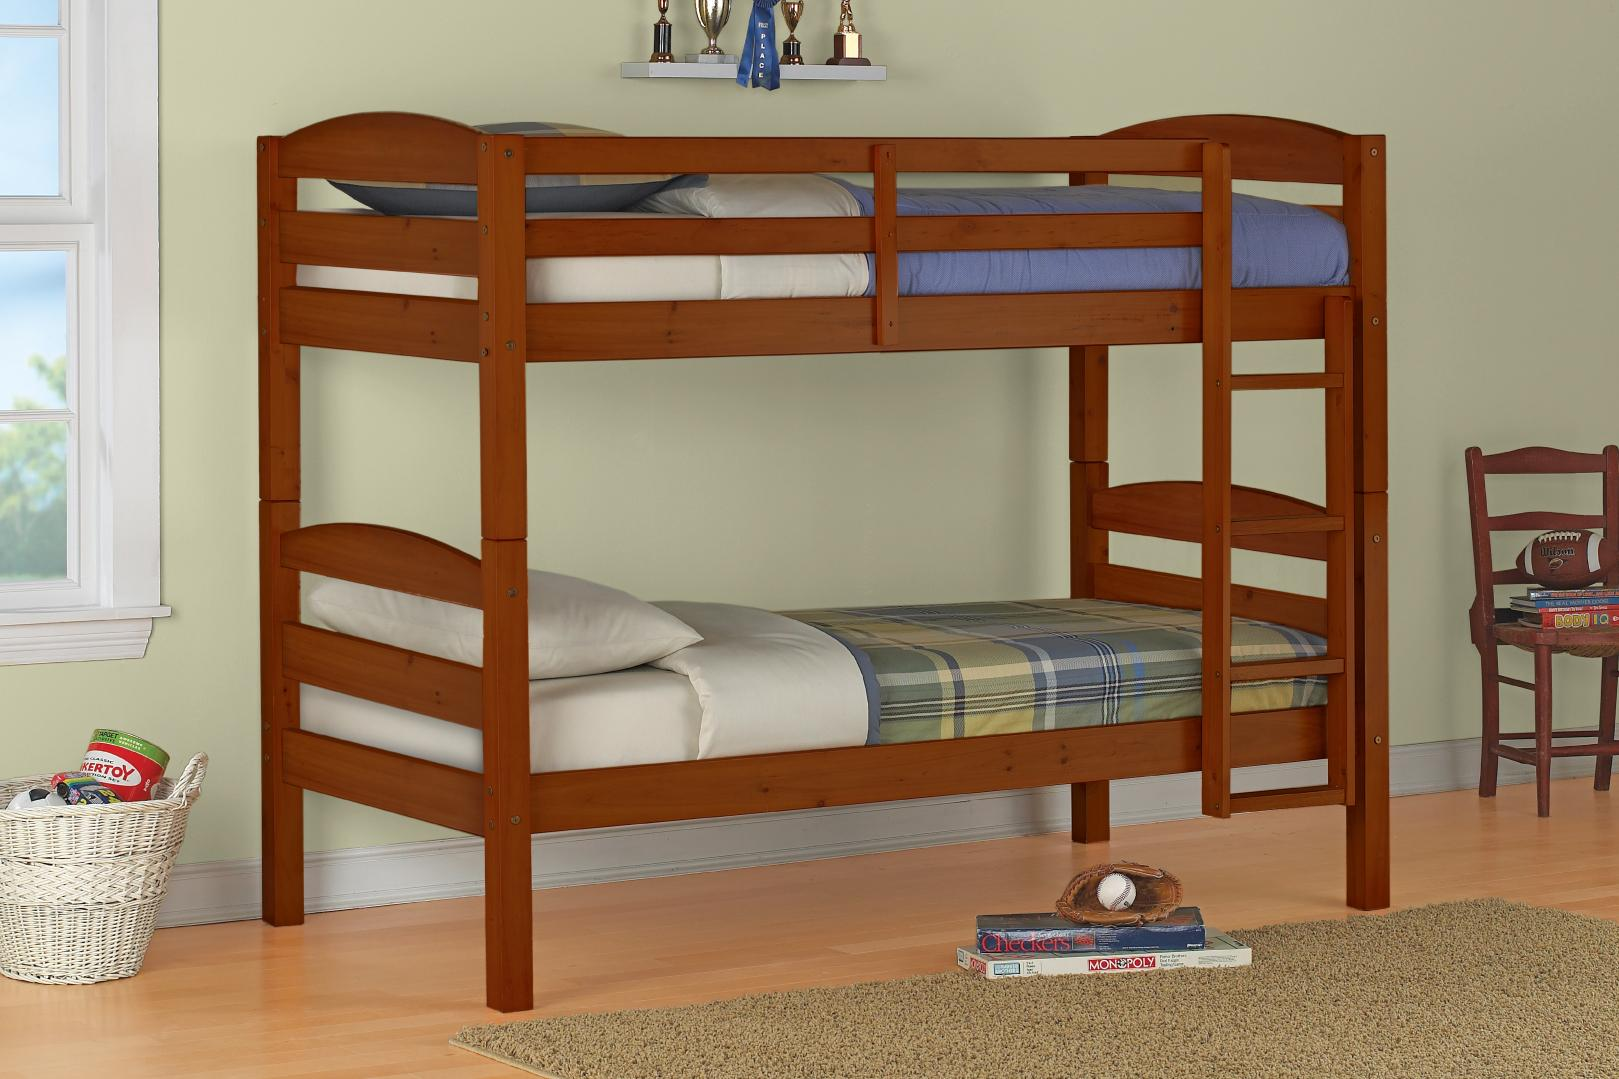 Add Simple Wooden Bunk Beds in Simple Kids Bedroom with White Wicker Basket on Hardwood Flooring